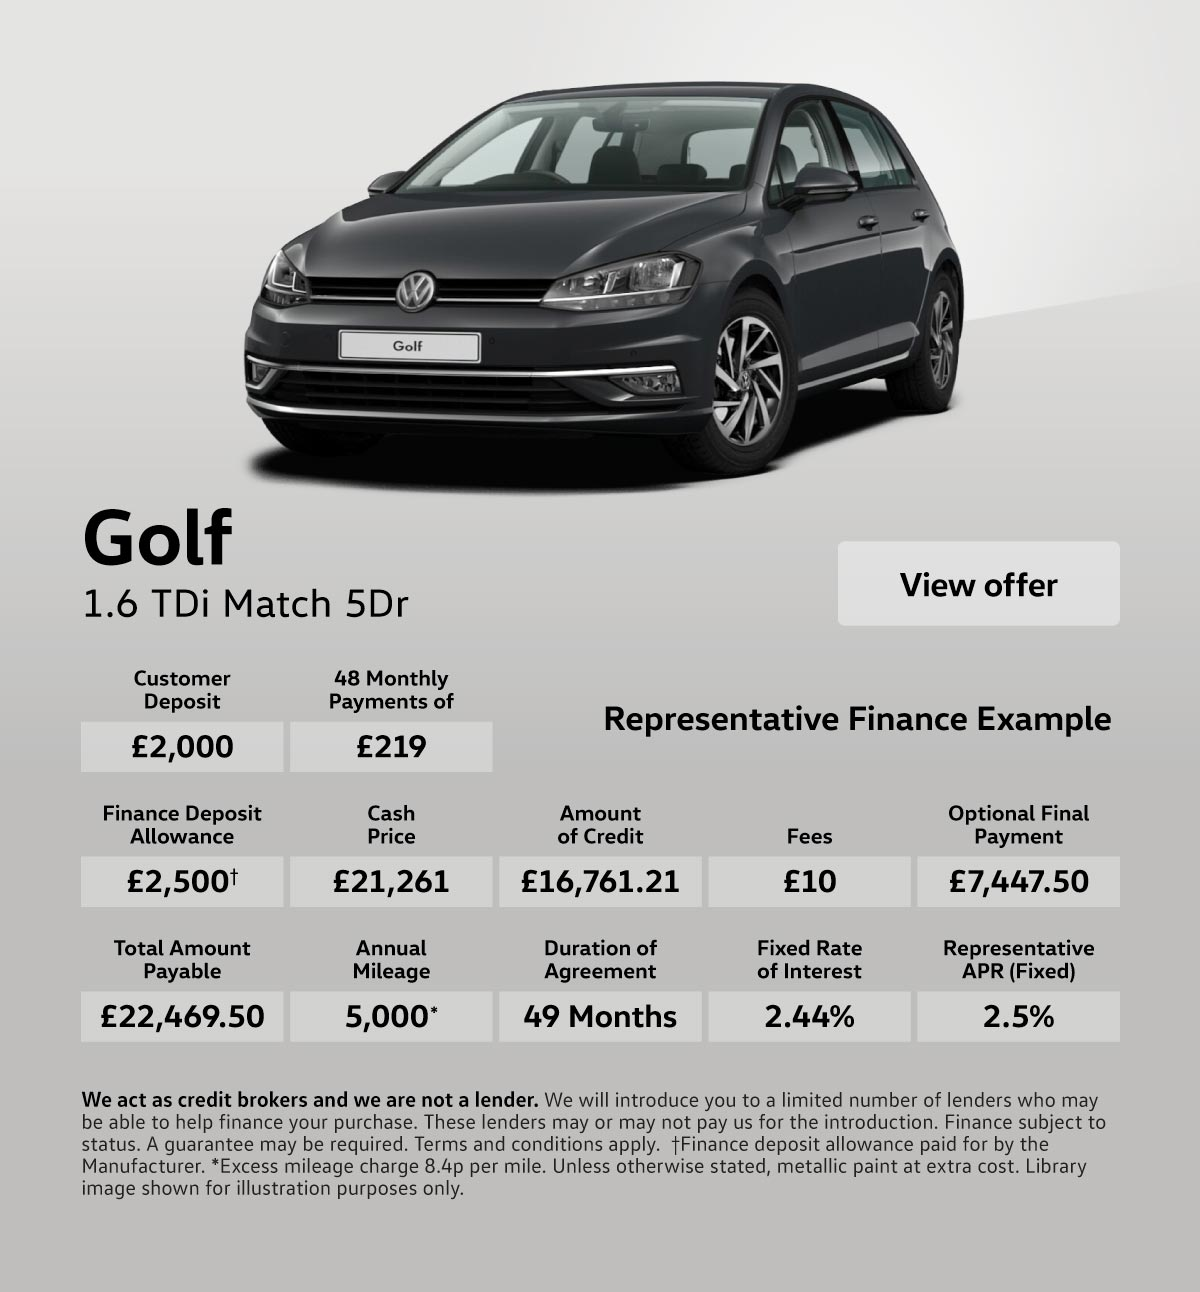 [Volkswagen Golf] Volkswagen Golf 1.6 Match 100419 Banner 1